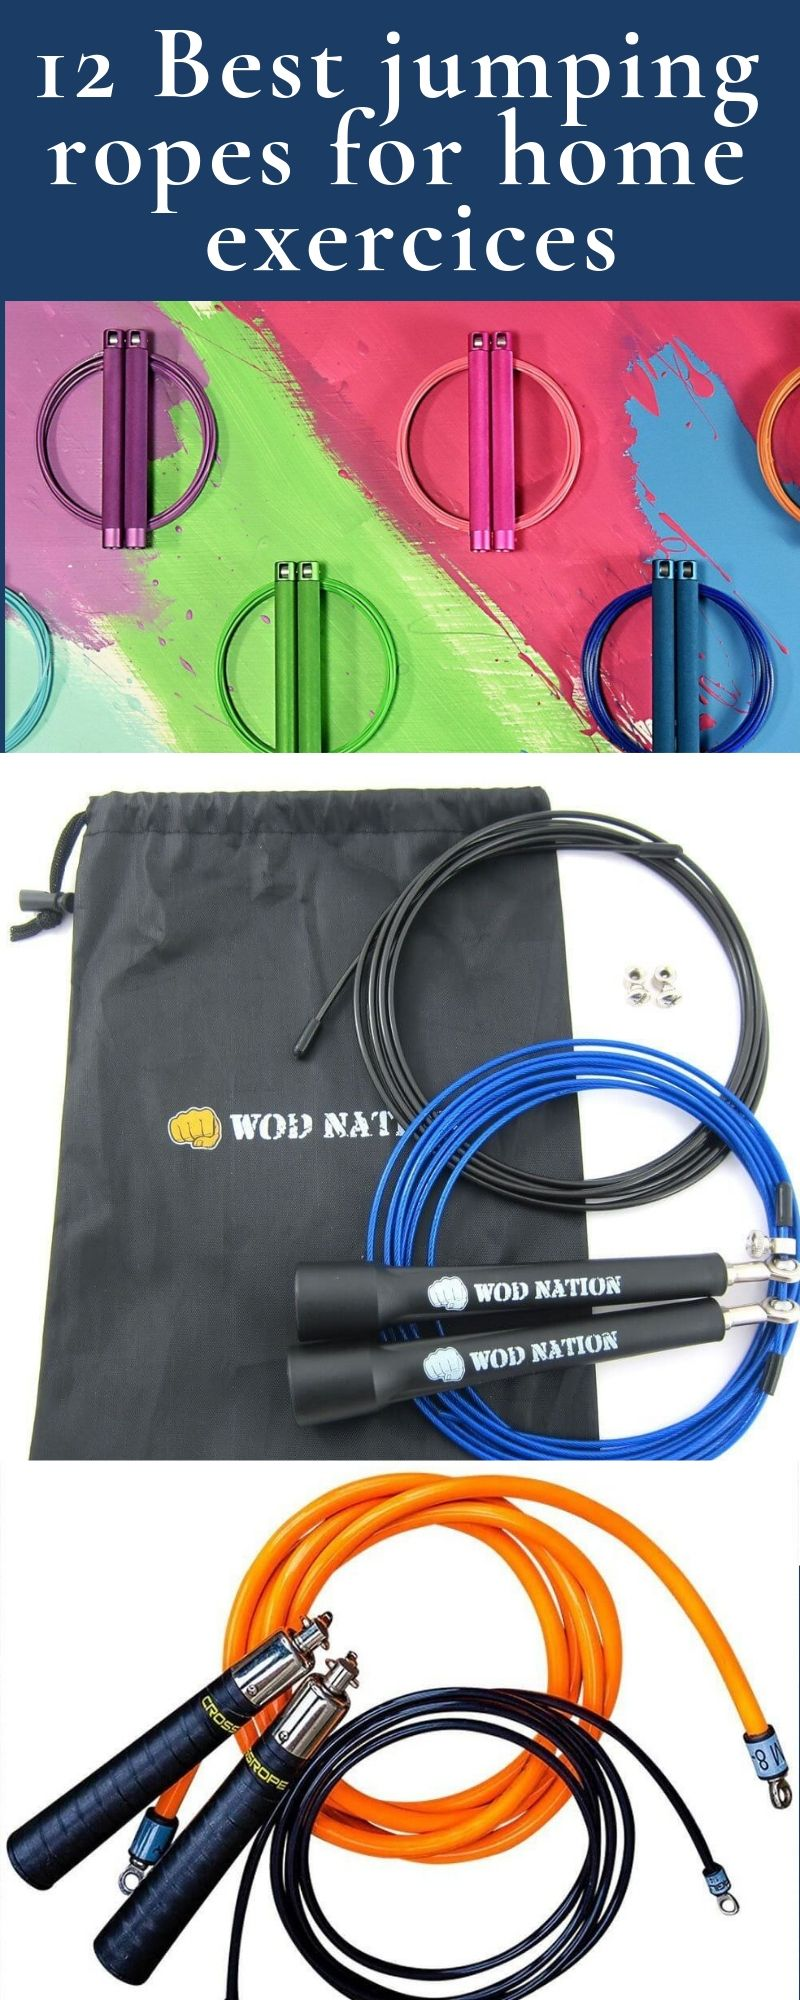 12 best jump ropes for working out. Jump rope games for kids